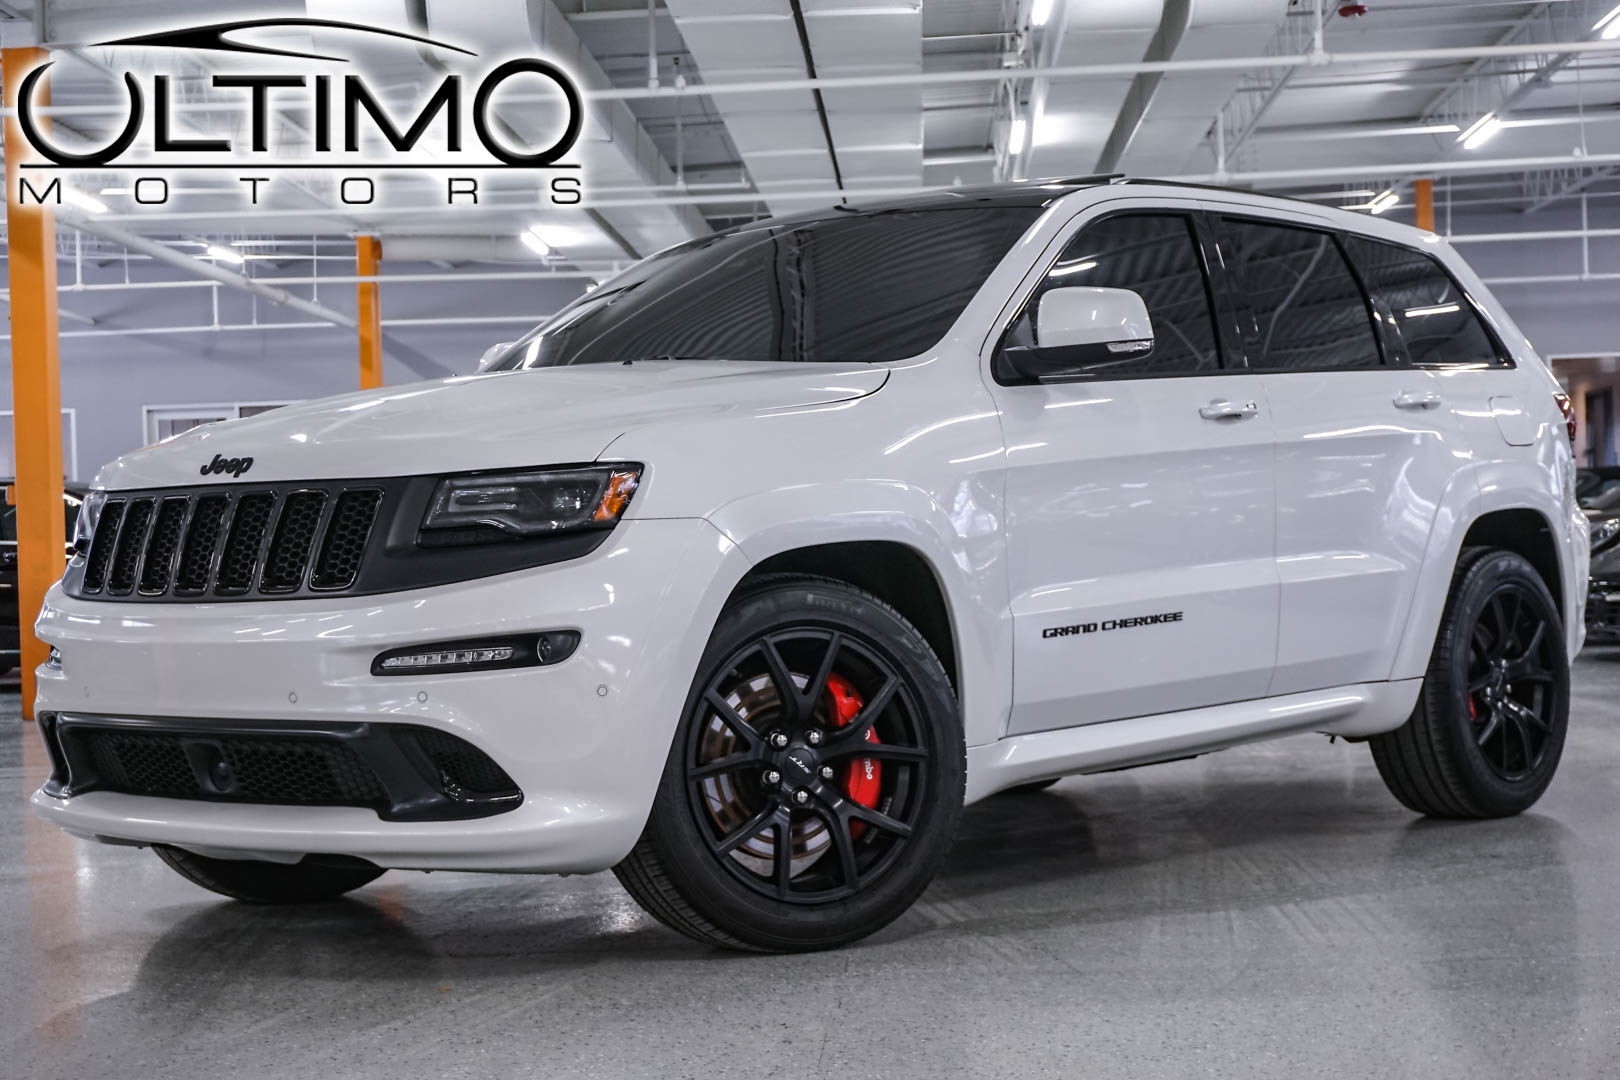 pre owned 2016 jeep grand cherokee srt night suv in warrenville u3654 ultimo motors. Black Bedroom Furniture Sets. Home Design Ideas